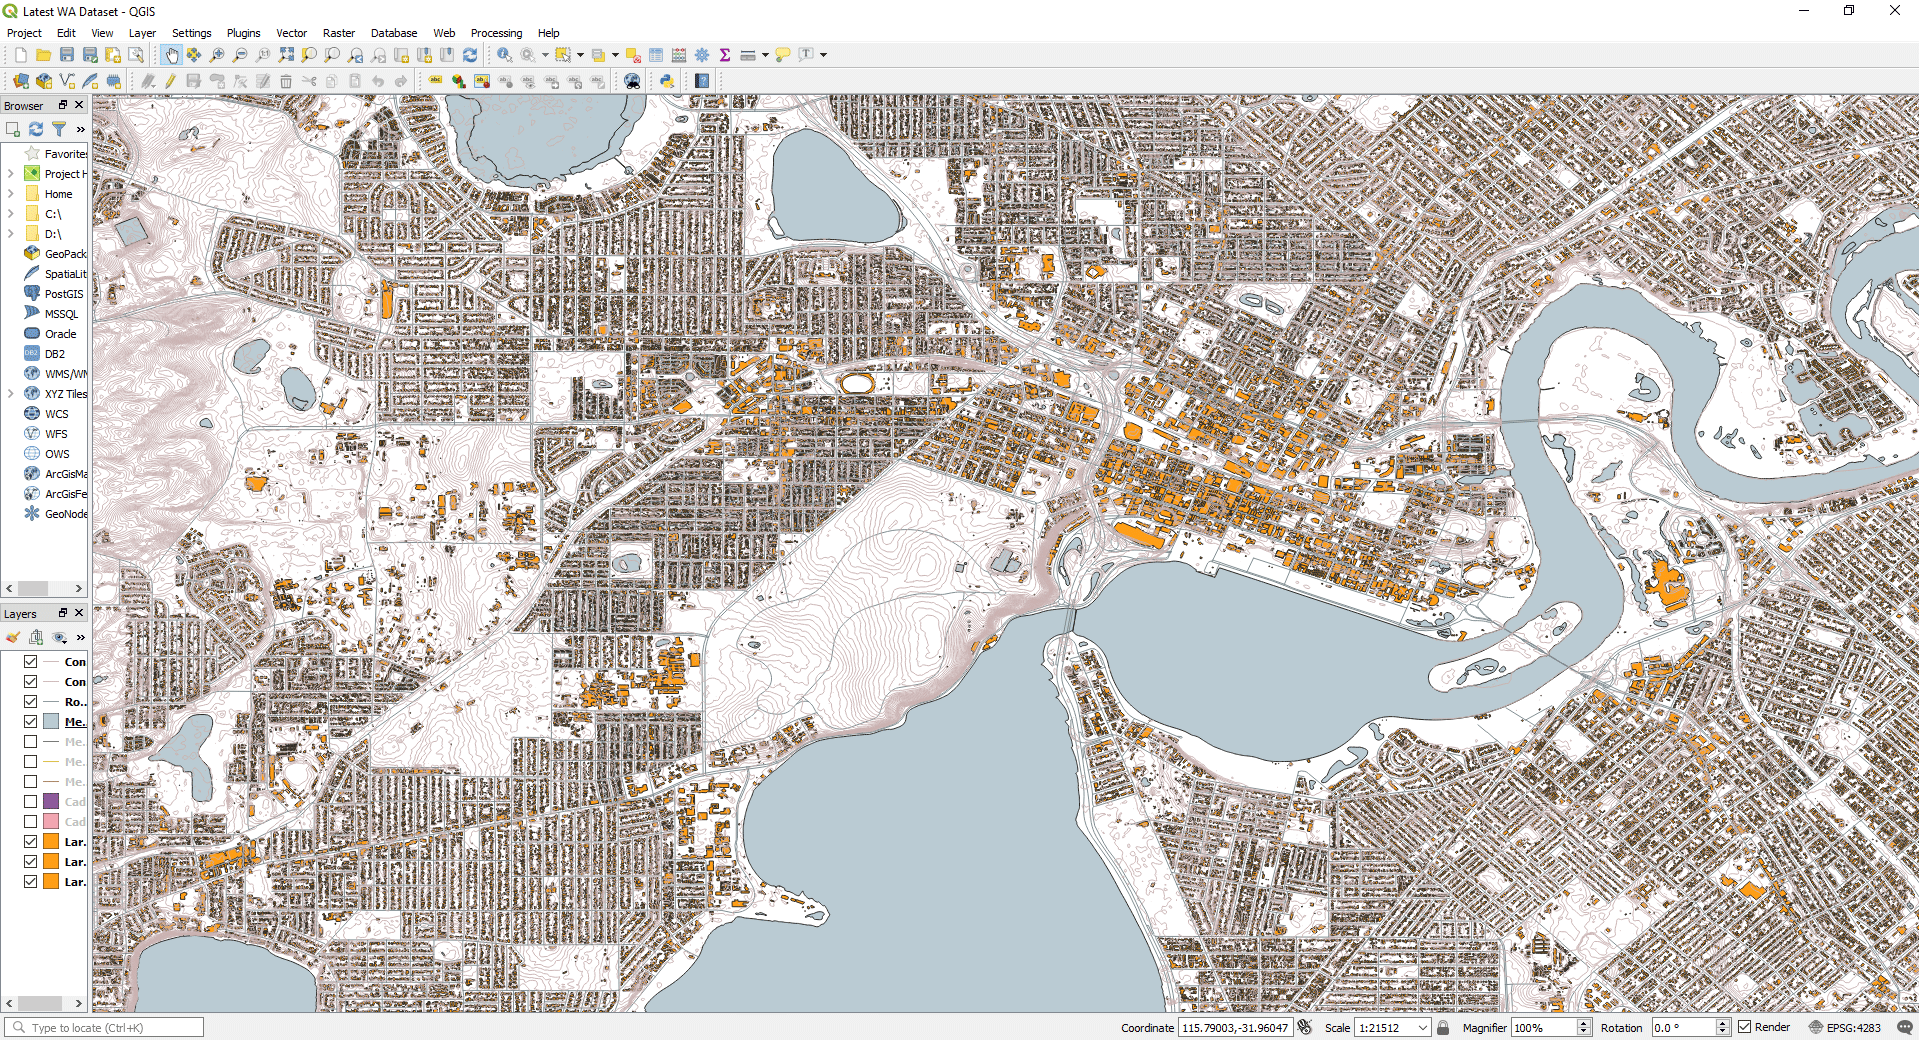 [Figure: QGIS interface with local Perth data]